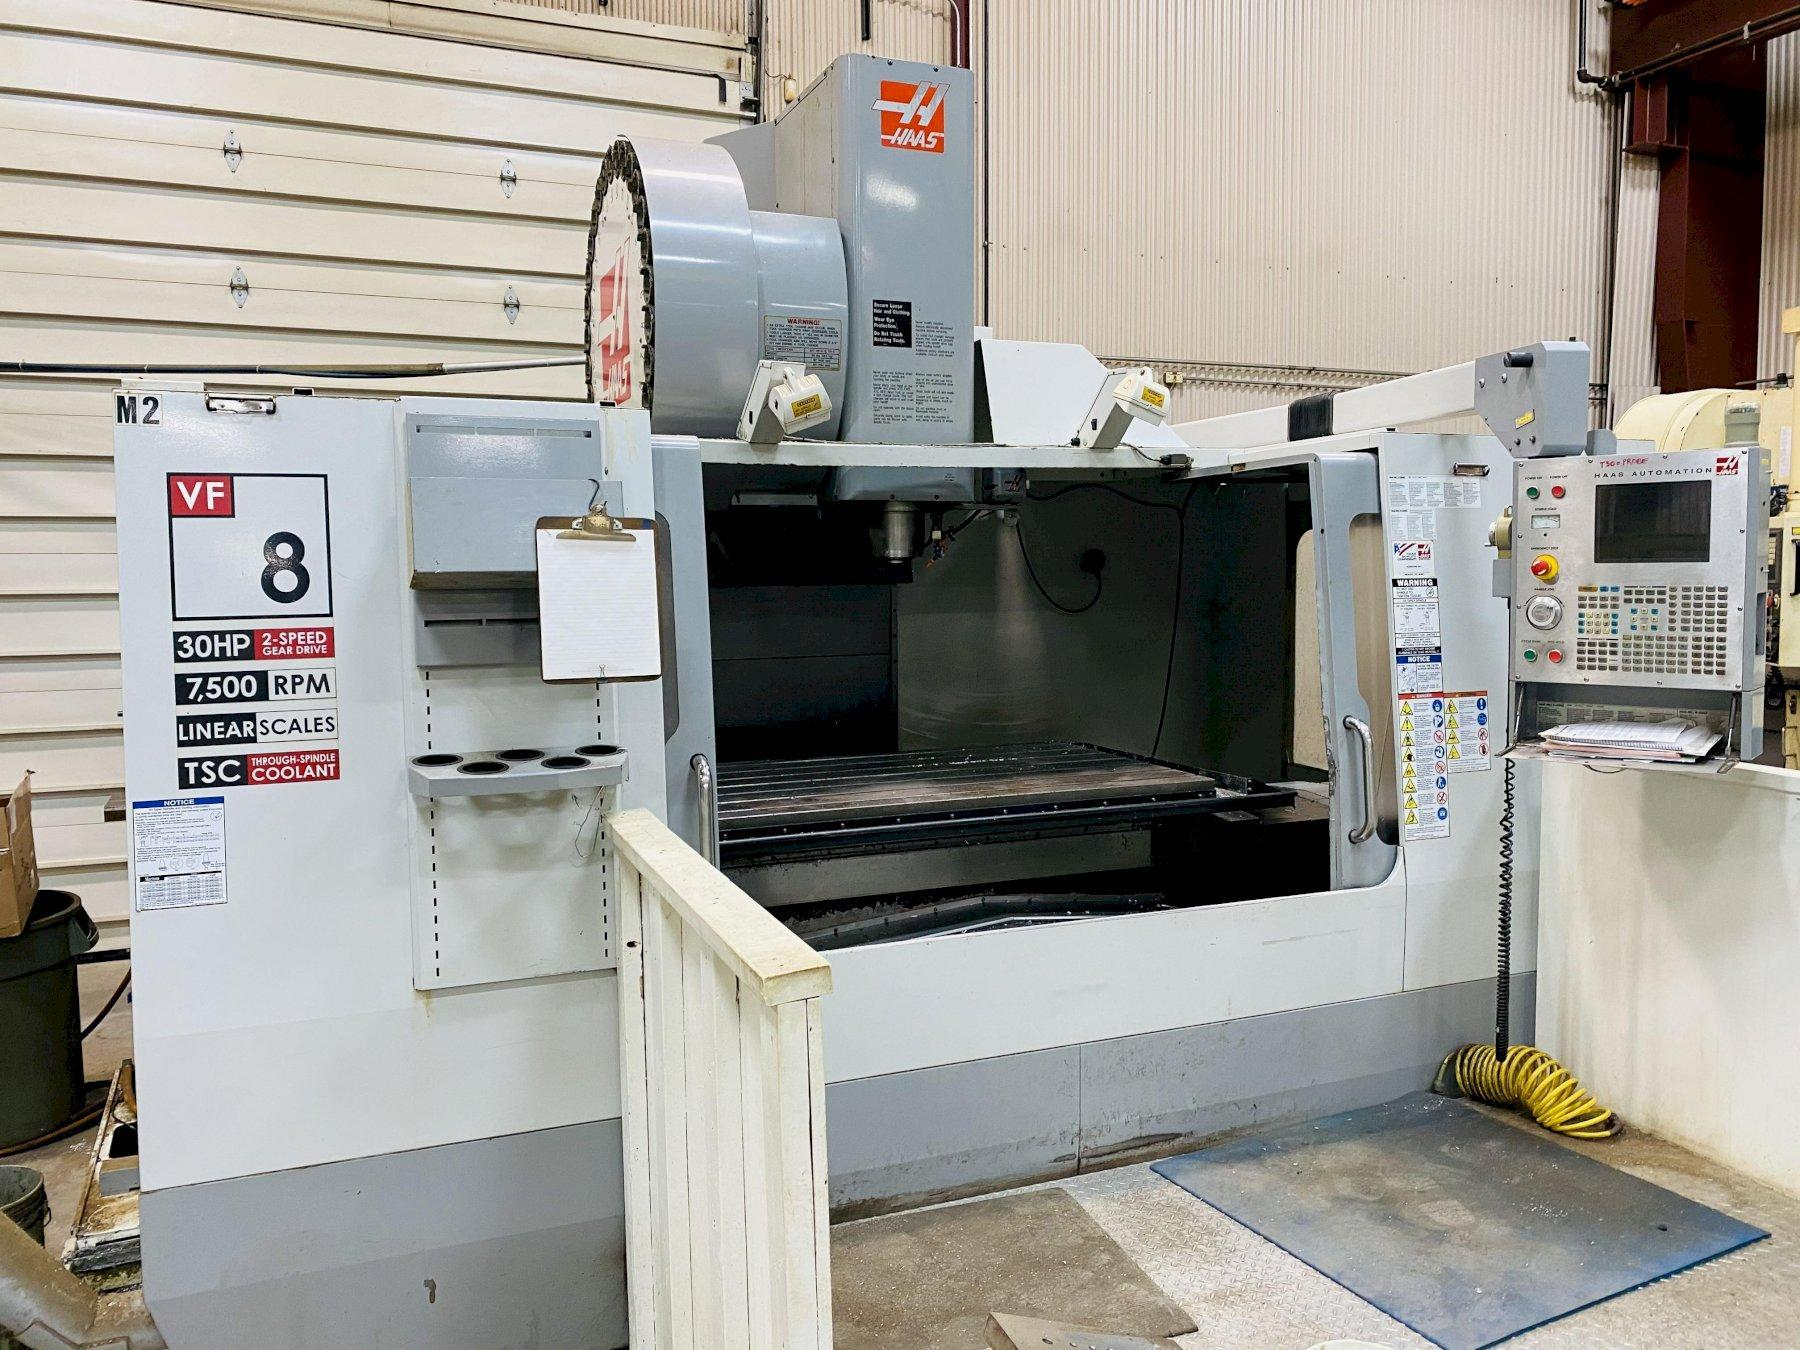 HAAS VF-8/50 CNC VERTICAL MACHINING CENTER. STOCK # 1264520